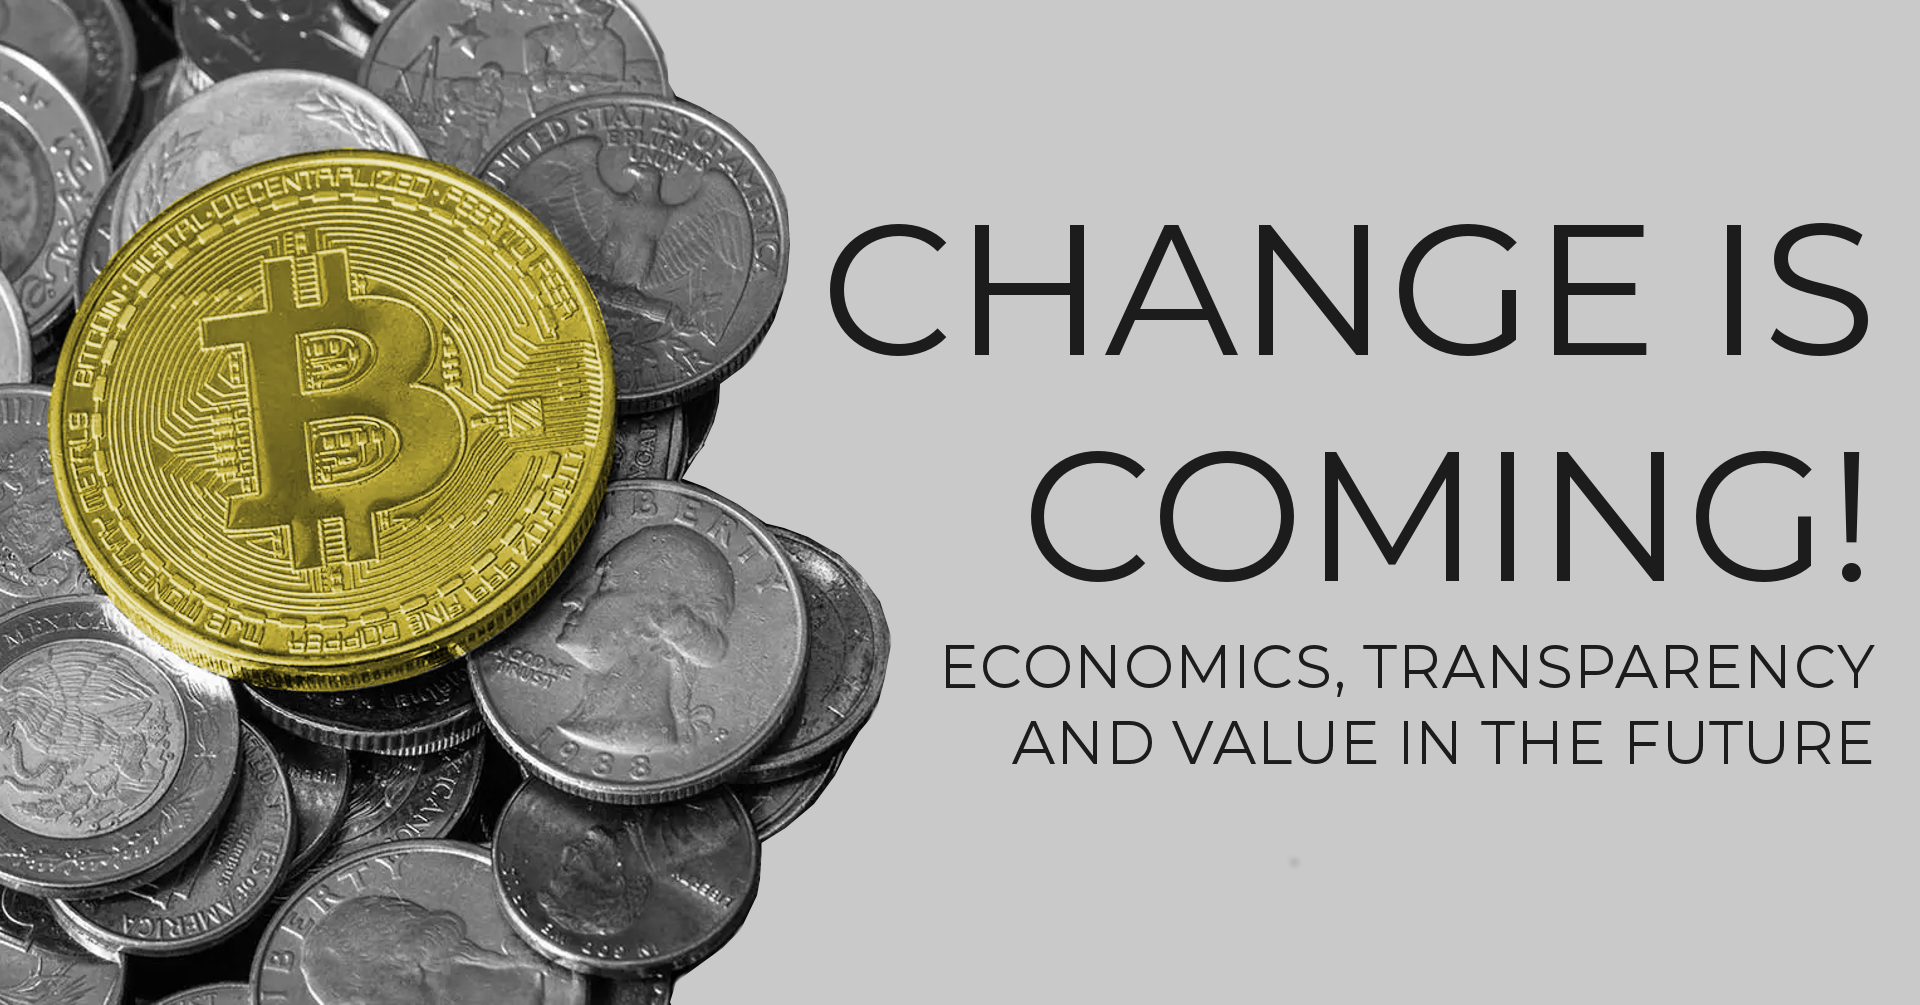 Change Is Coming! - Economics, Transparency And The Value In The Future